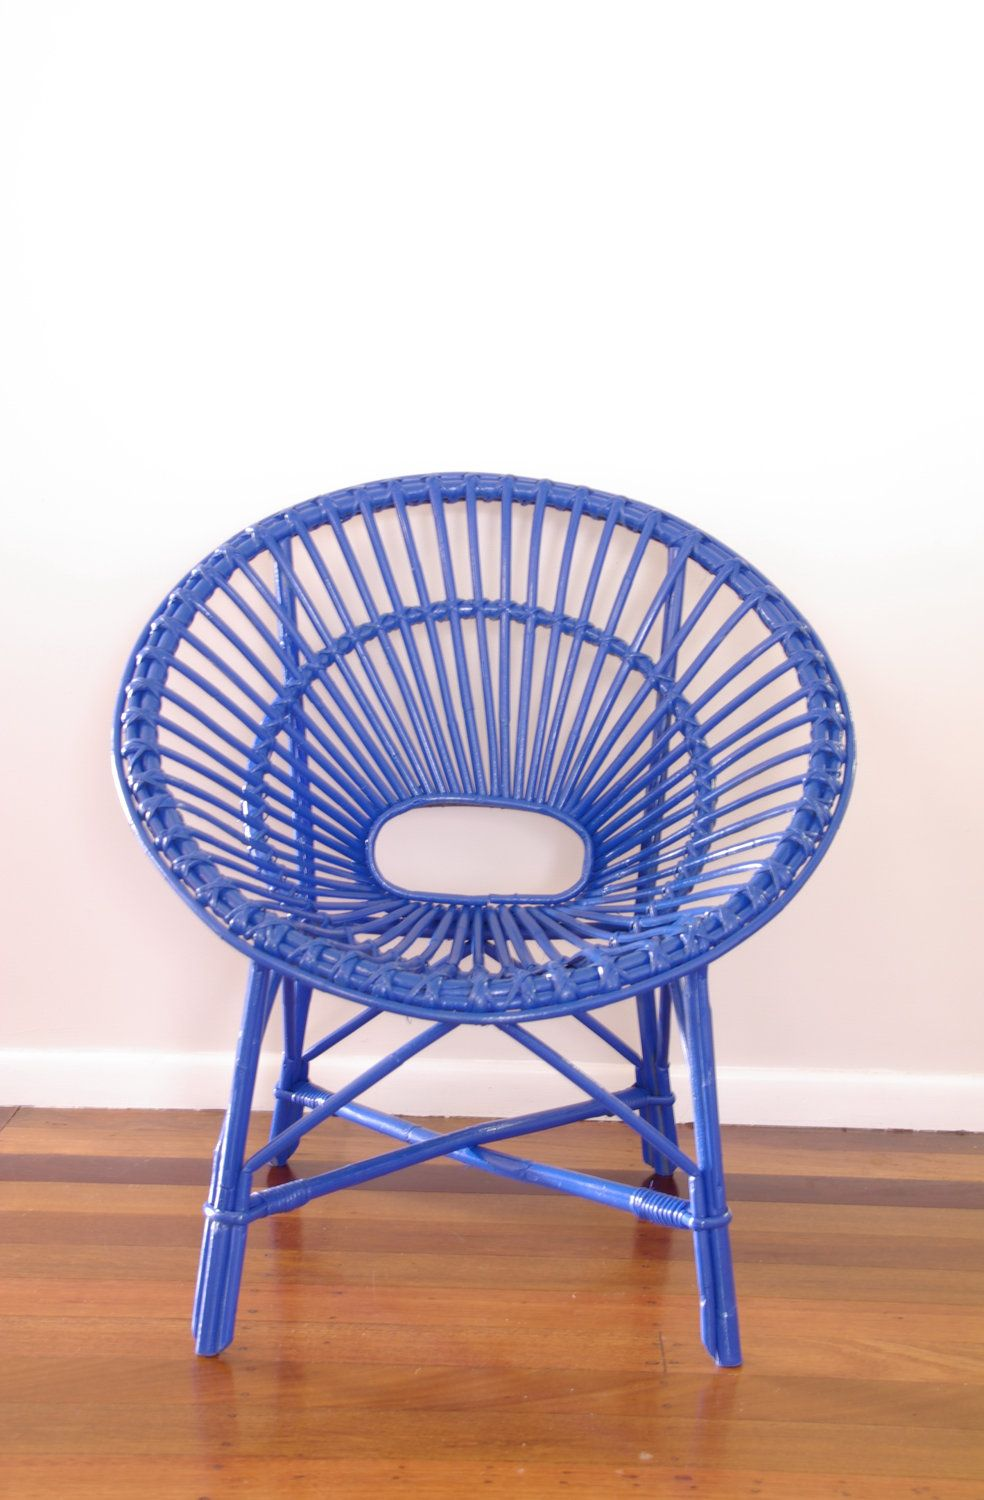 Made To Order   Upcycled Vintage Cane Saucer Chair Neon Blue. $151.00, Via  Etsy.